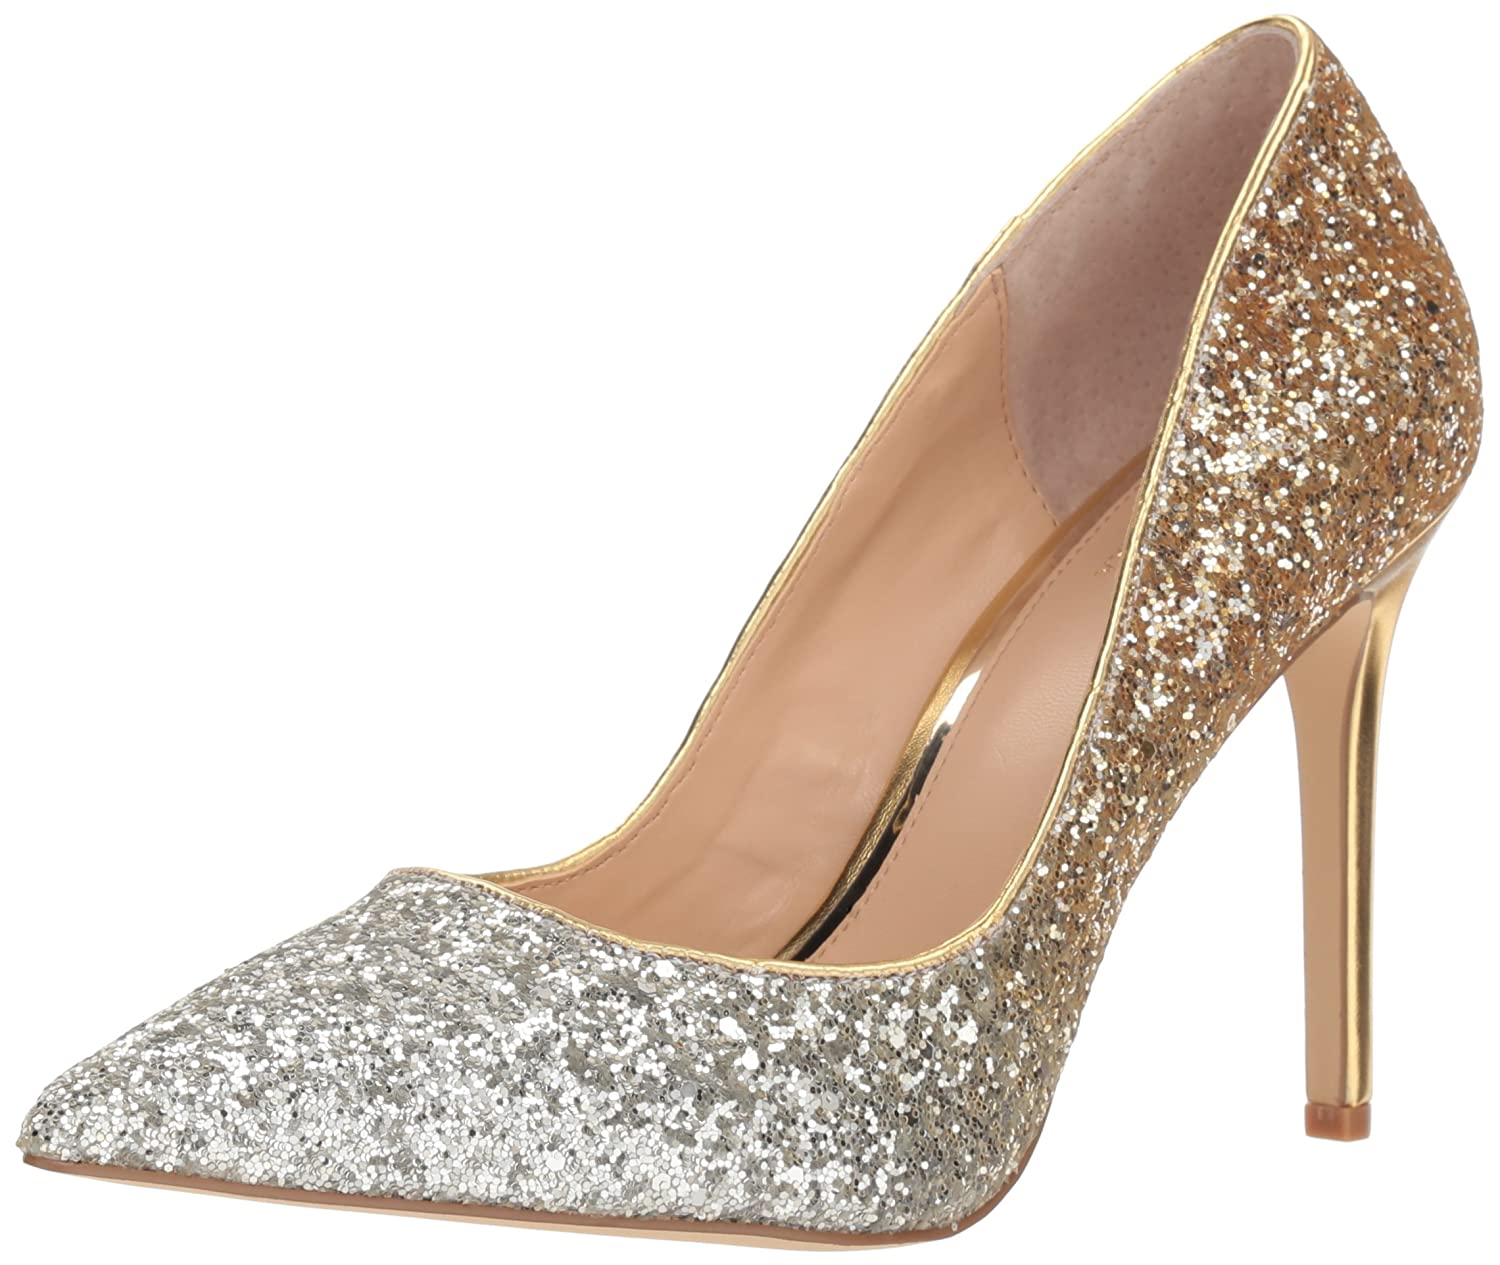 Badgley Mischka Jewel Women's Malta Pump B07822SRPW 7 B(M) US|Silver/Gold